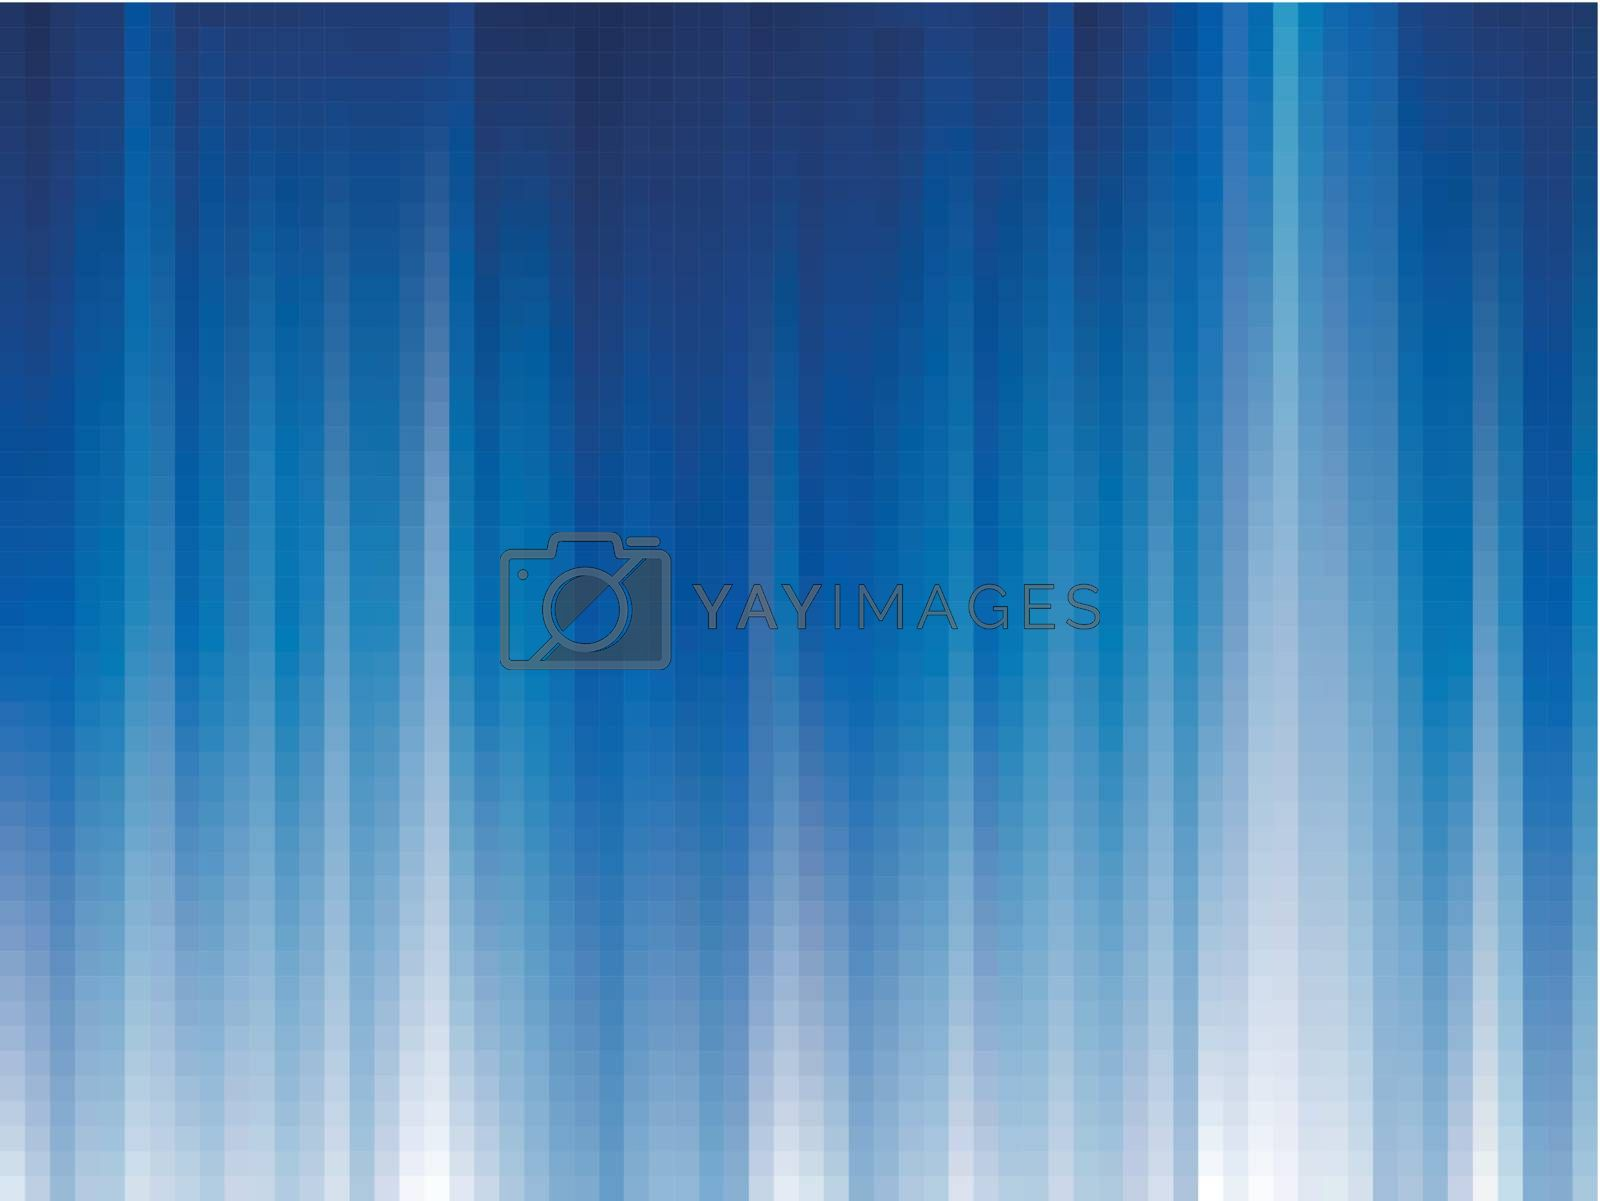 Vector Motion Blur Abstract EPS 10 vector file included